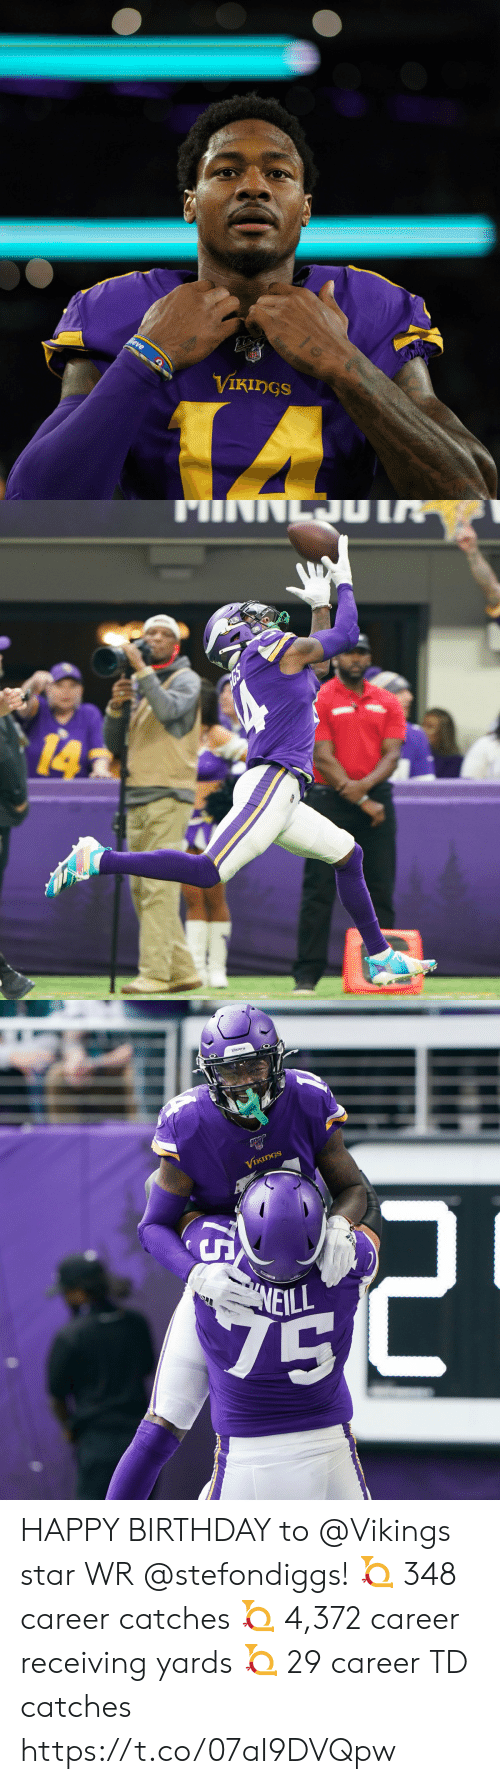 Happy Birthday: NFL  lieve  VIKINGS   14   Vininys  VIKINGS  NEILL  7SL  75 HAPPY BIRTHDAY to @Vikings star WR @stefondiggs! 📯 348 career catches  📯 4,372 career receiving yards 📯 29 career TD catches https://t.co/07aI9DVQpw